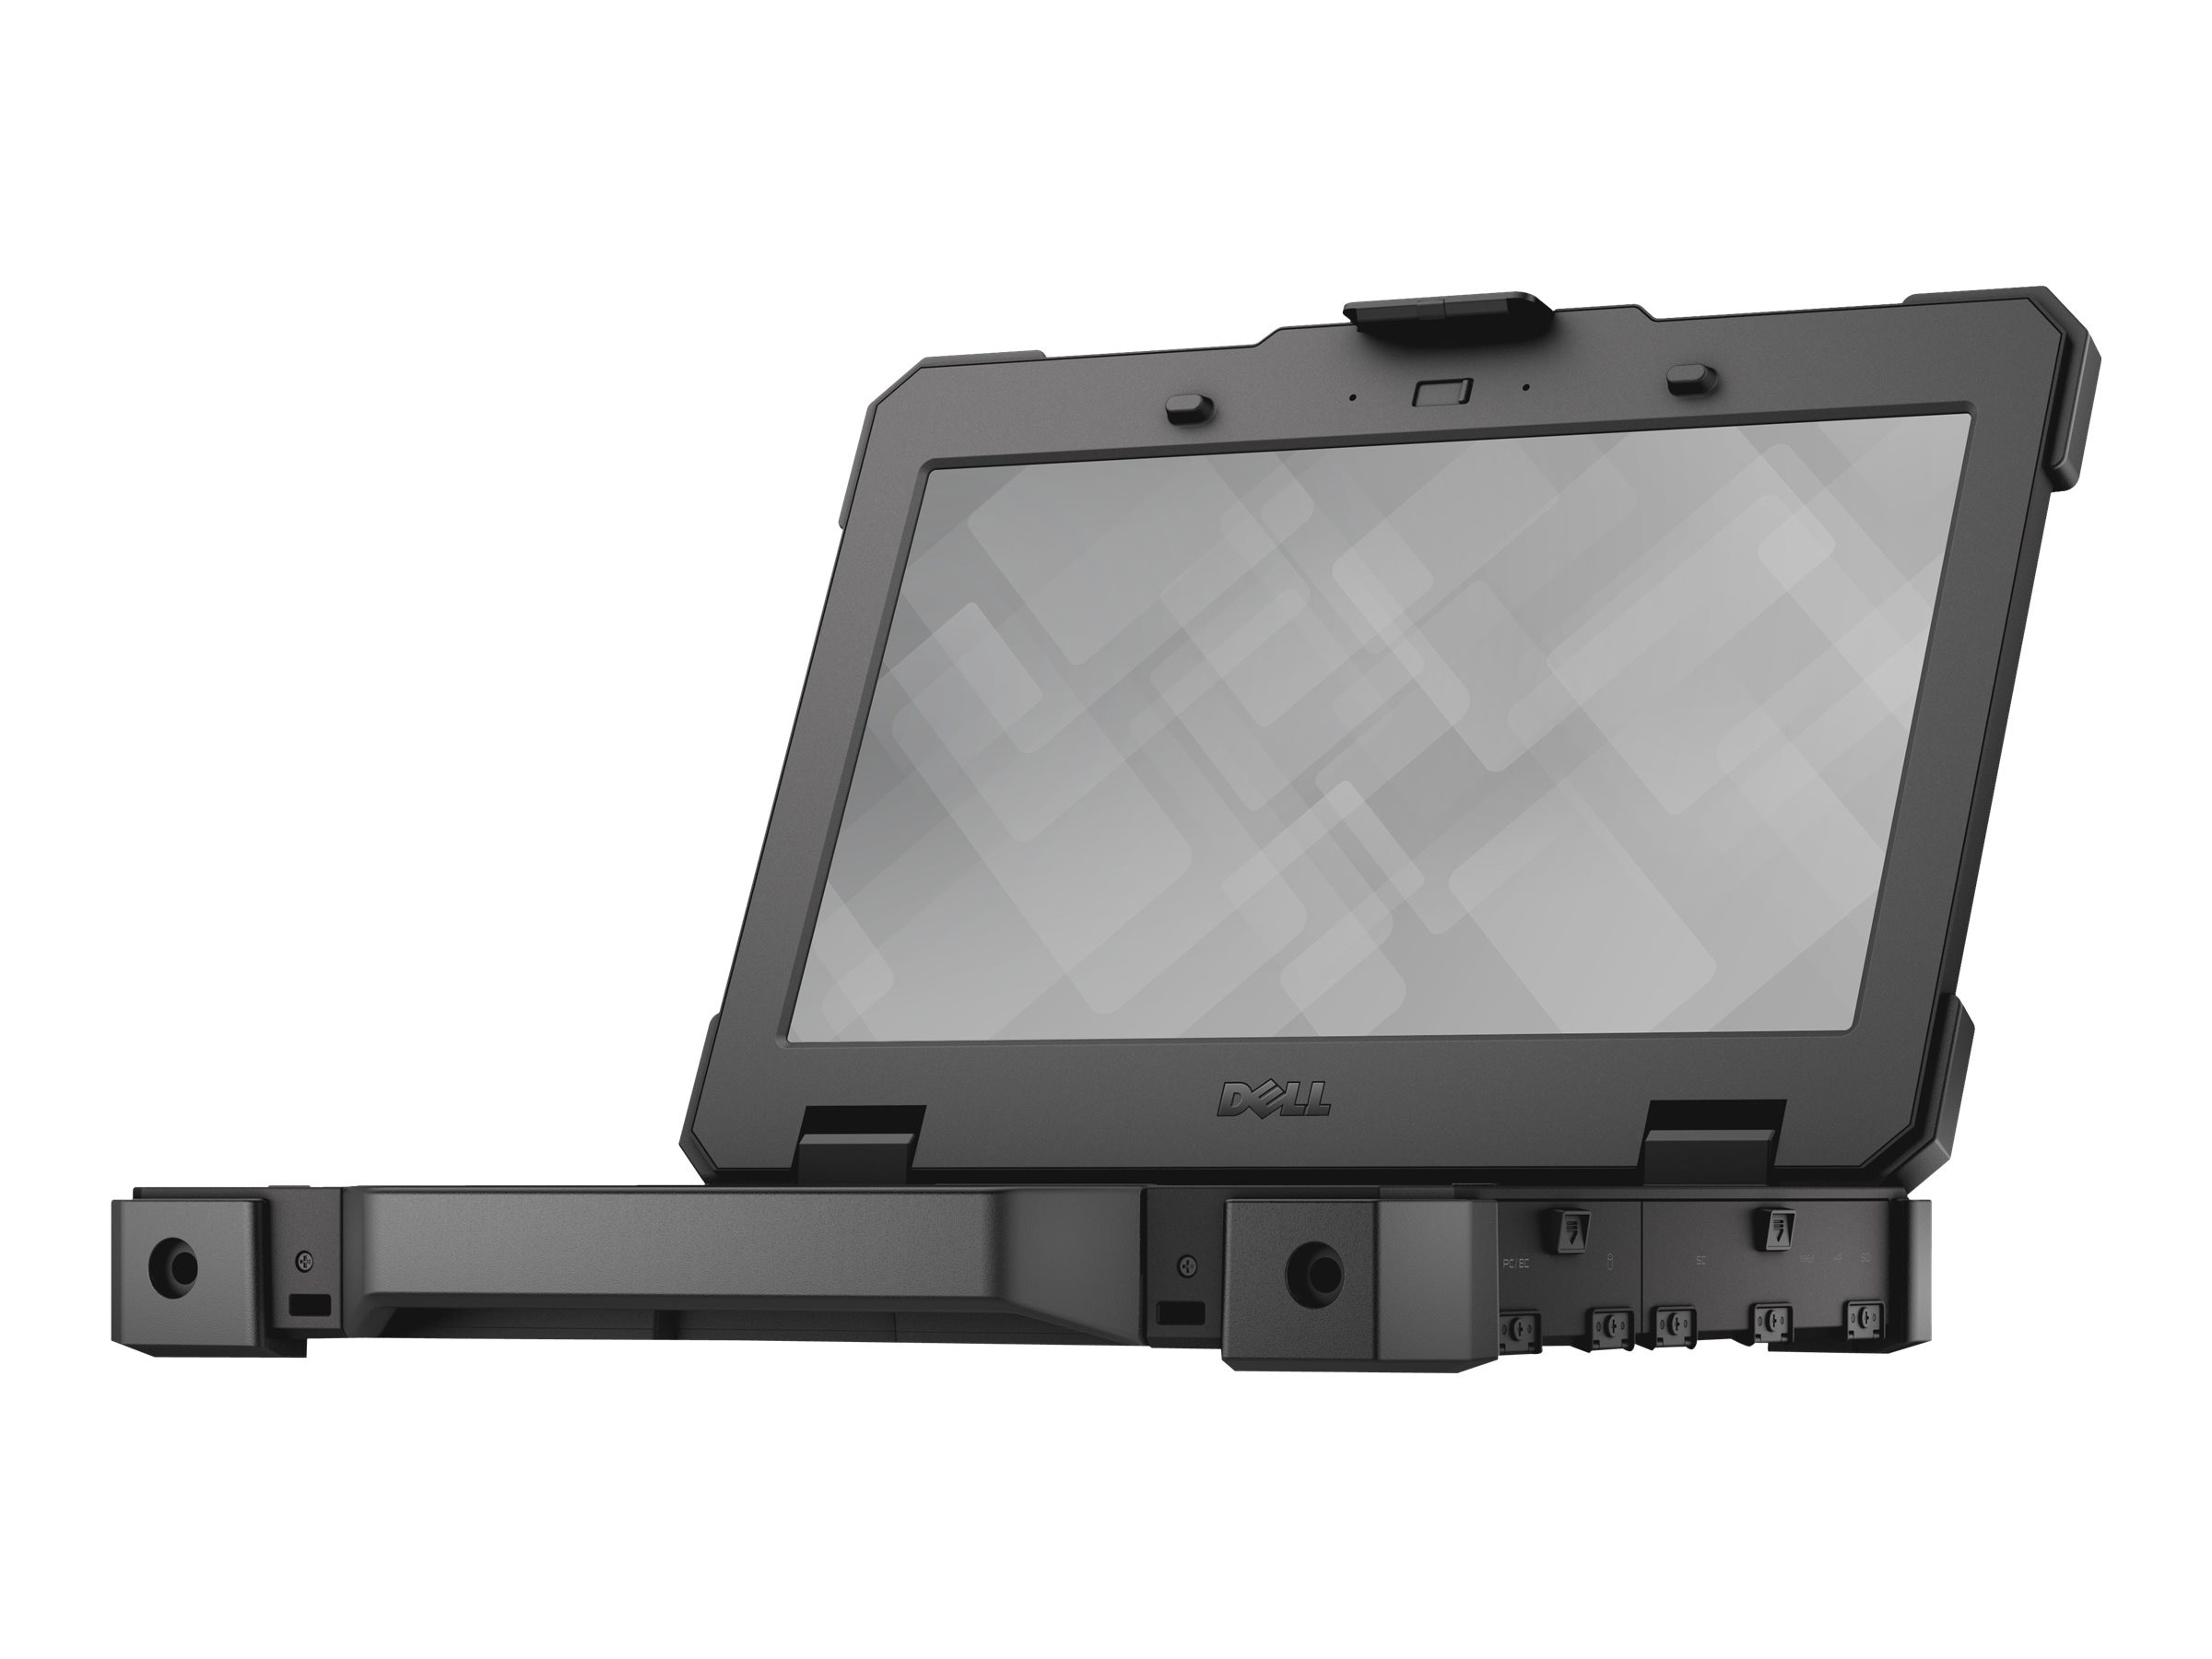 Dell Latitude 14 Rugged Extreme 1.7GHz Core i7 14in display, 462-5850, 17513072, Notebooks